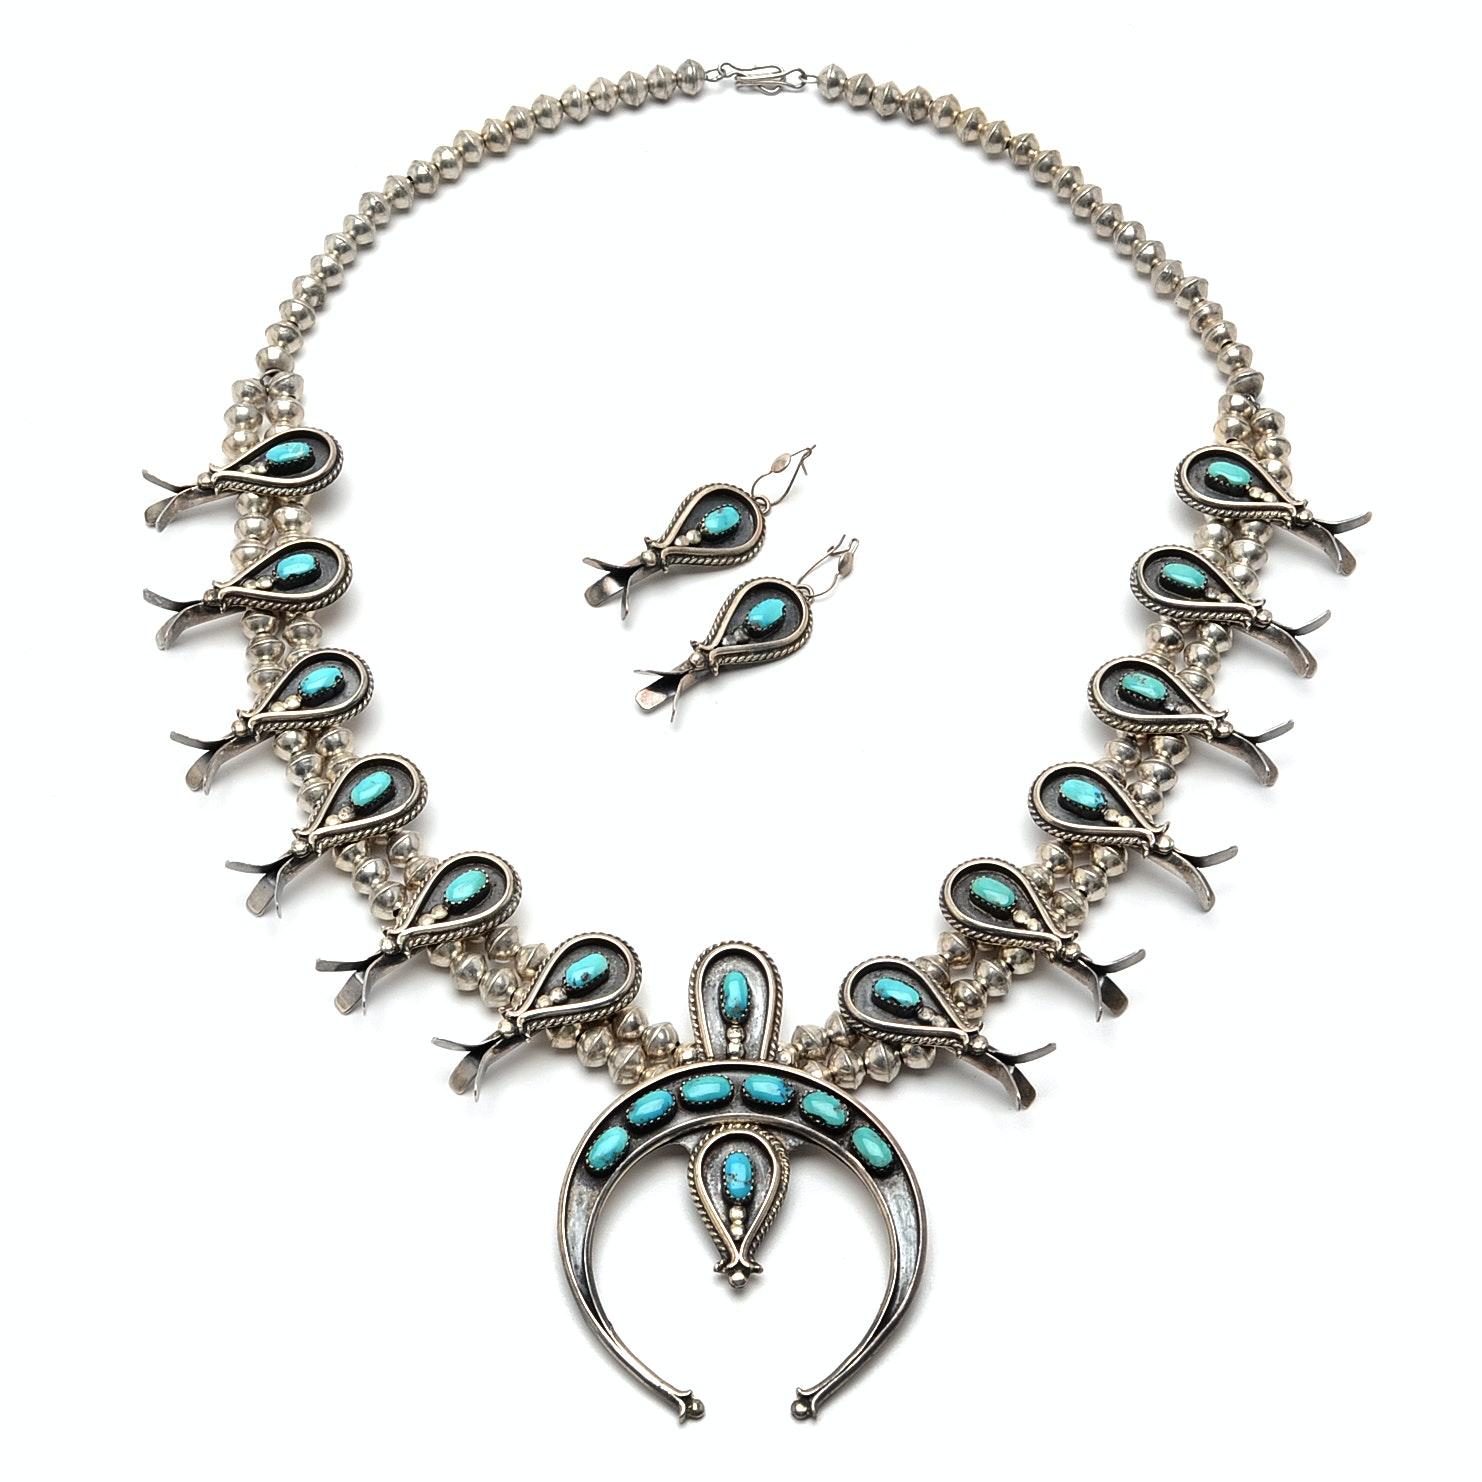 Native American Style 900 Silver Turquoise Squash Blossom Necklace and Earrings